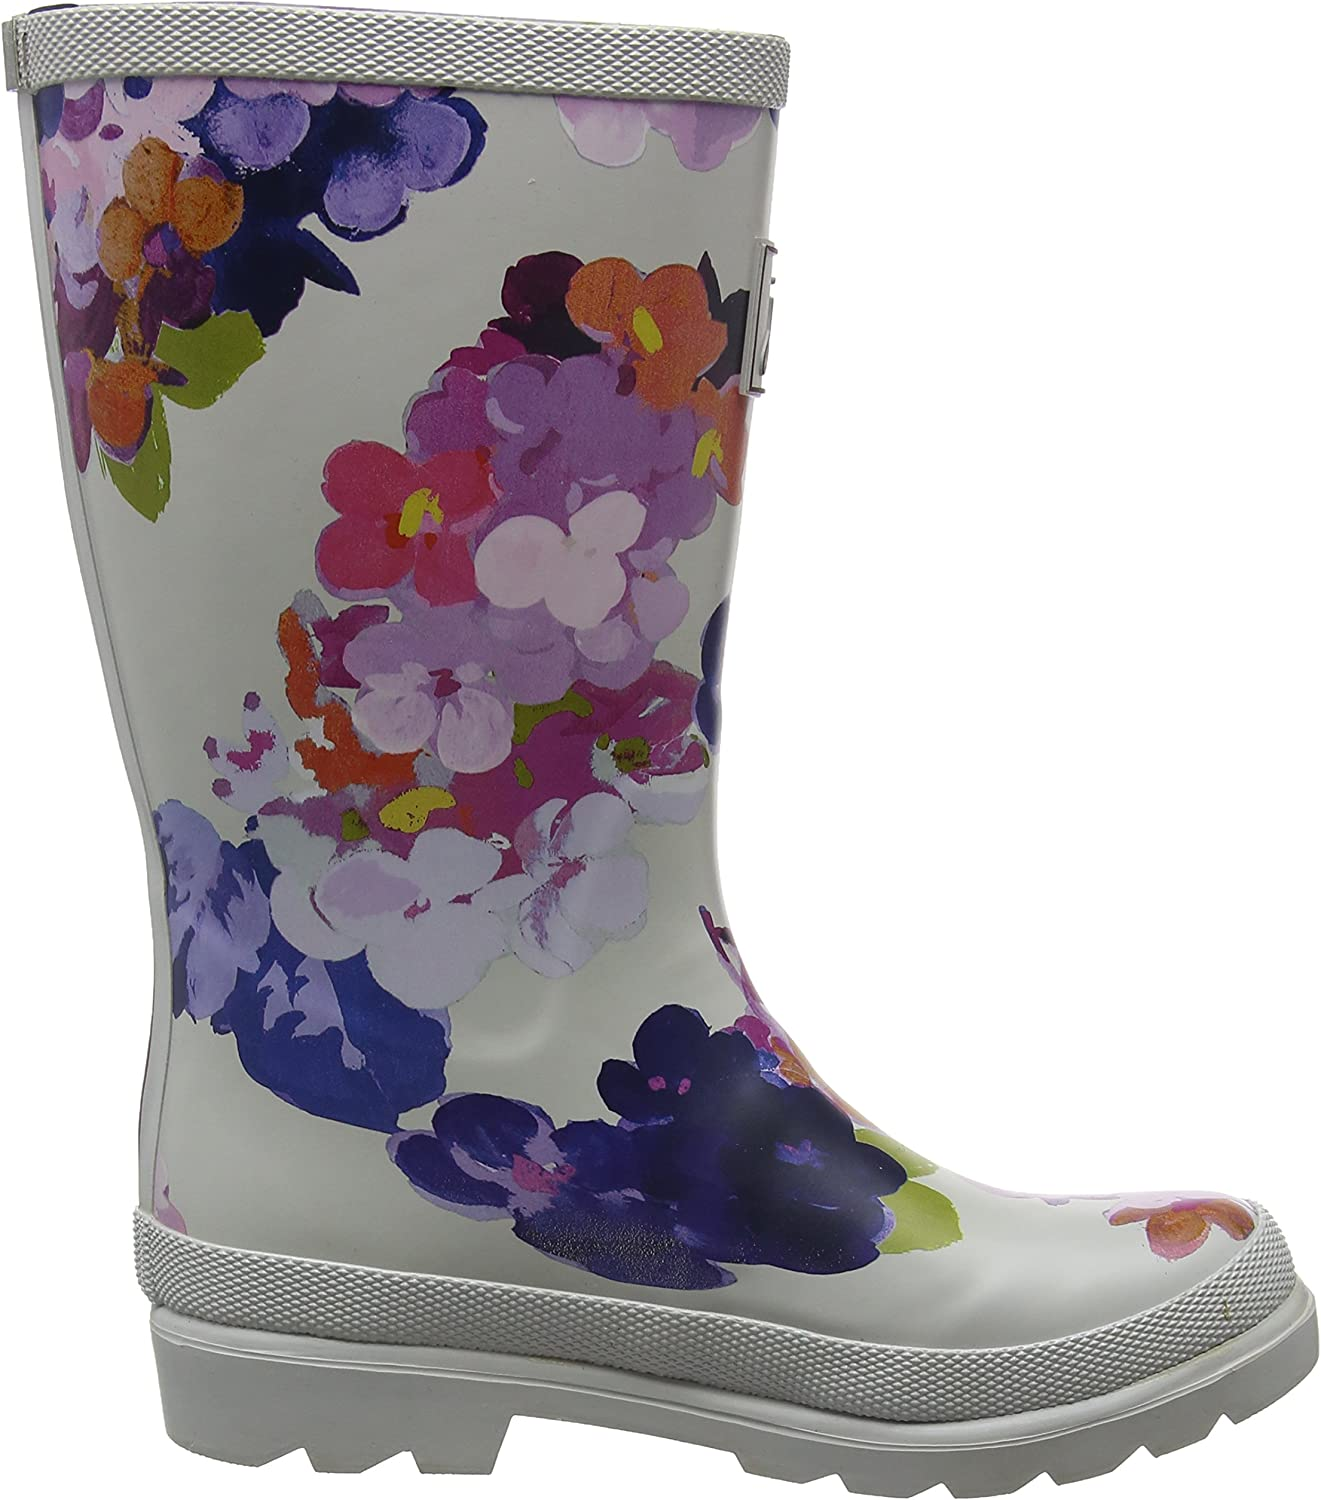 Joules Kids Girls Printed Welly Rain Boot Toddler//Little Kid//Big Kid Grey Painted Floral 13 Little Kid M